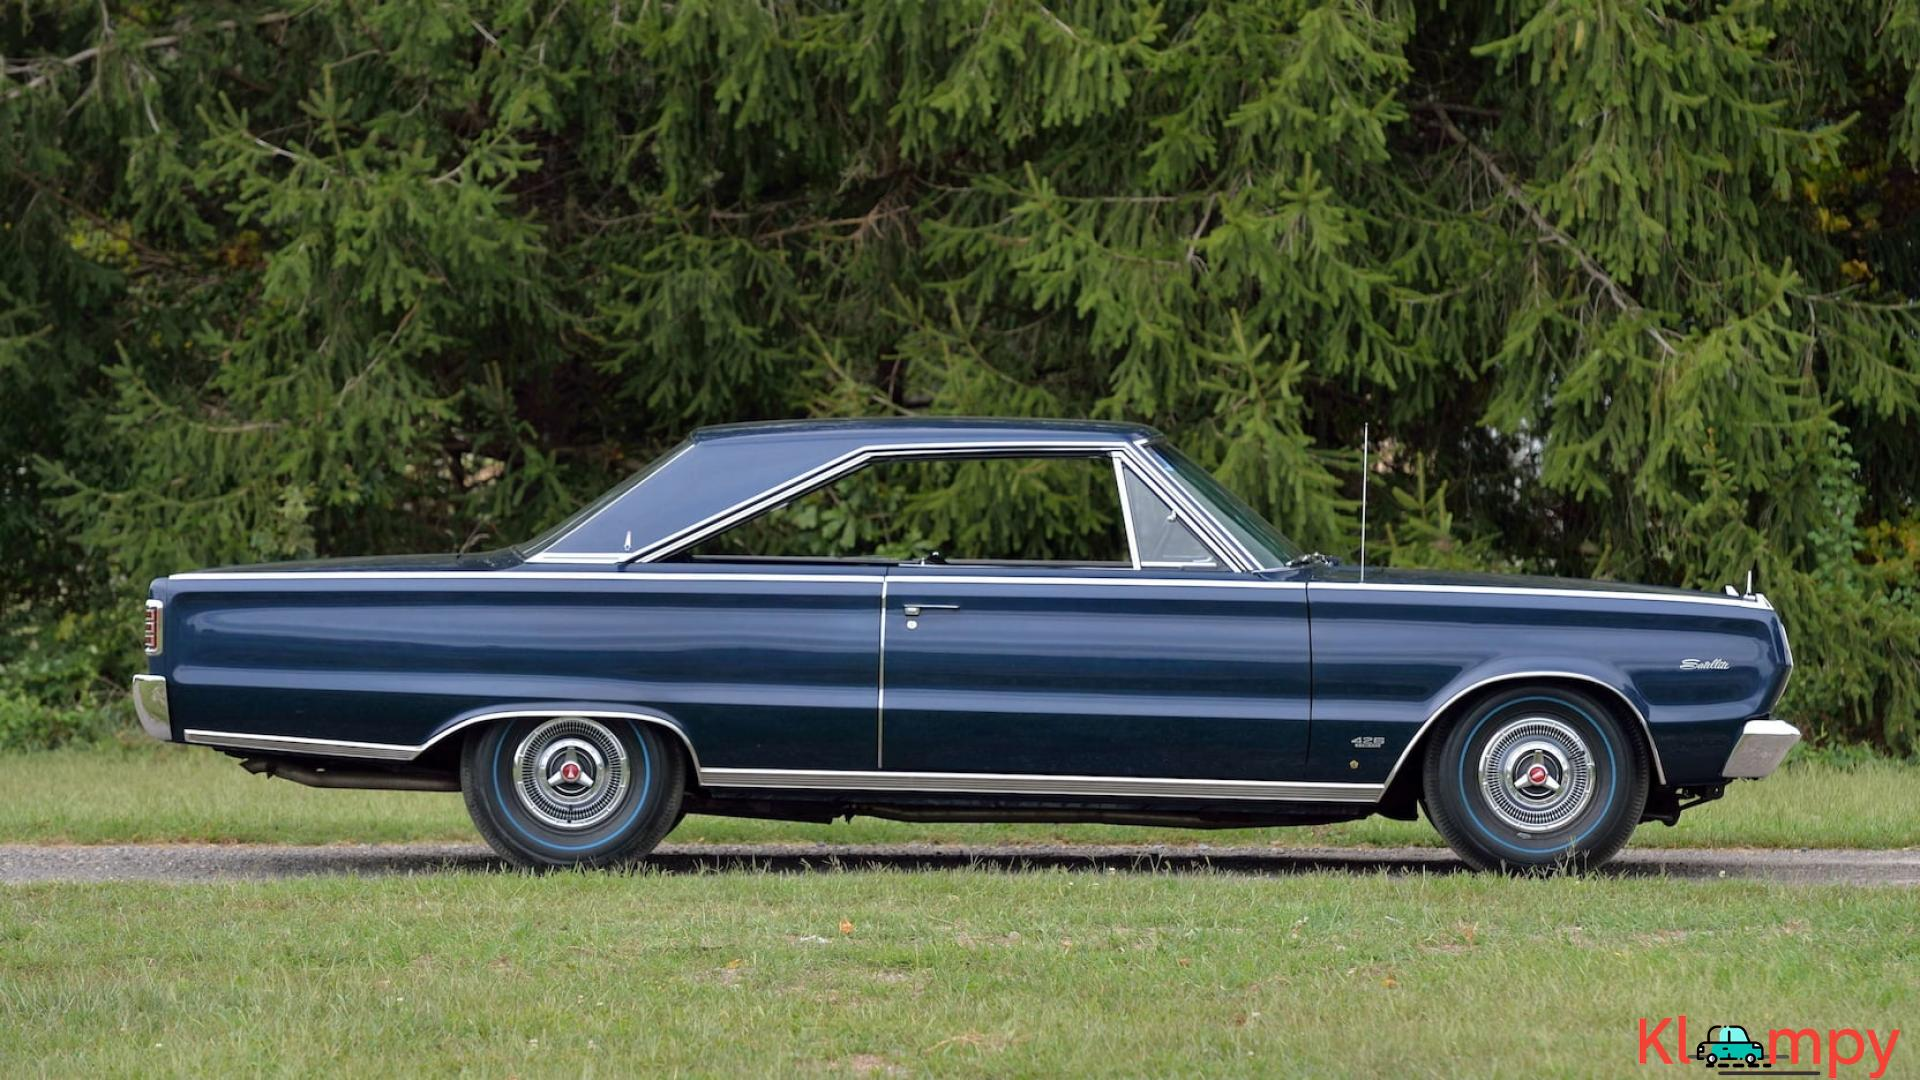 1966 Plymouth Satellite Original 426 CI - 3/18